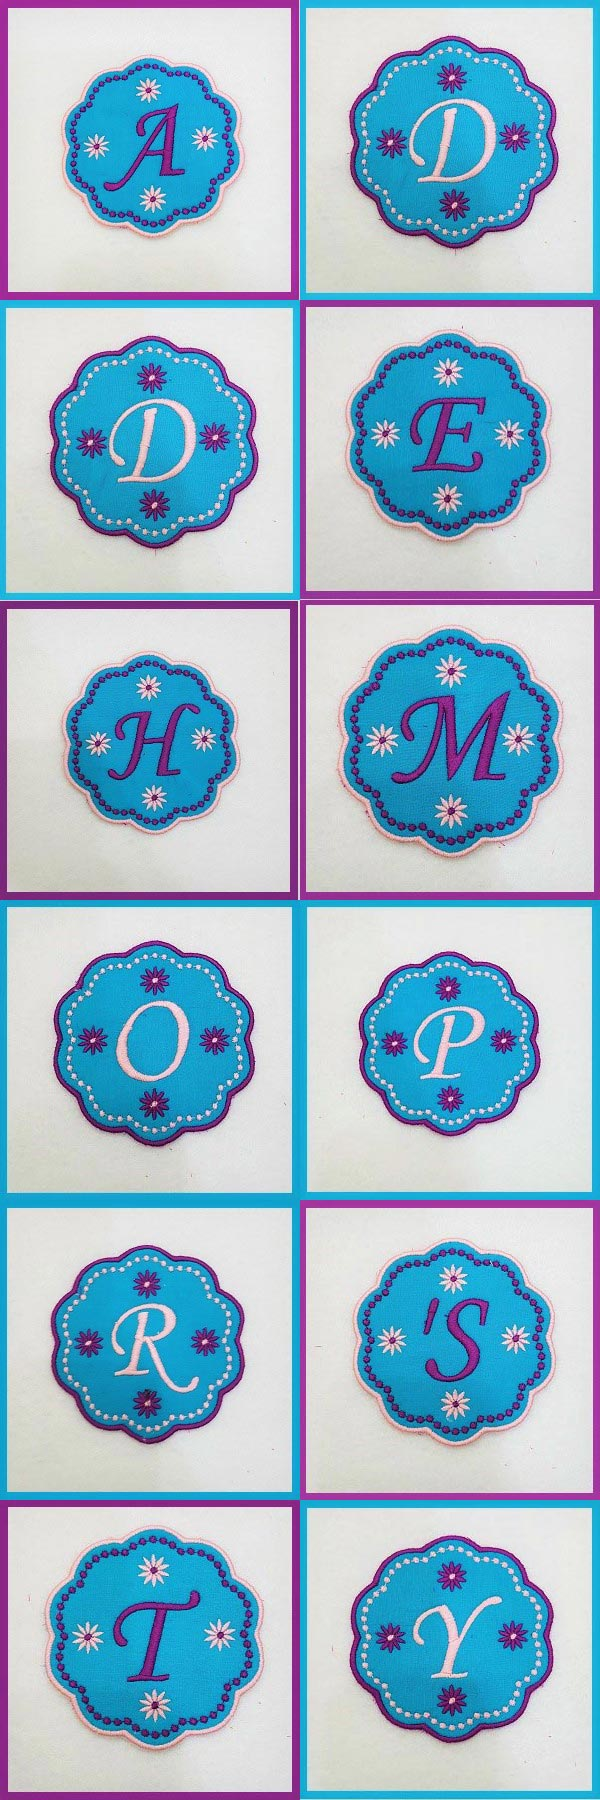 Happy Mothers Day Banner and Coasters Embroidery Machine Design Details